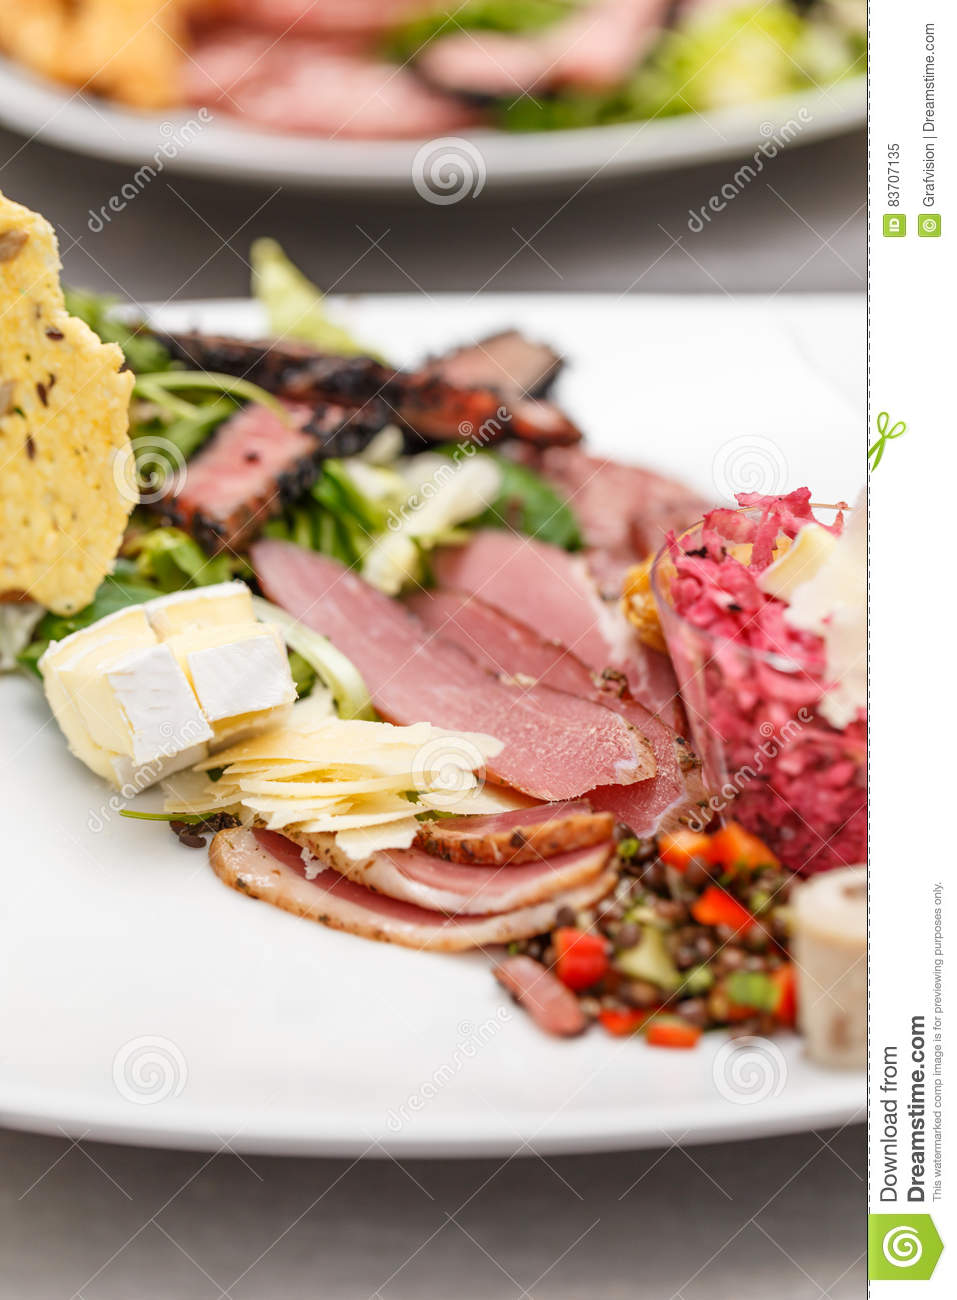 Appetizer Served On A Plate Stock Photo